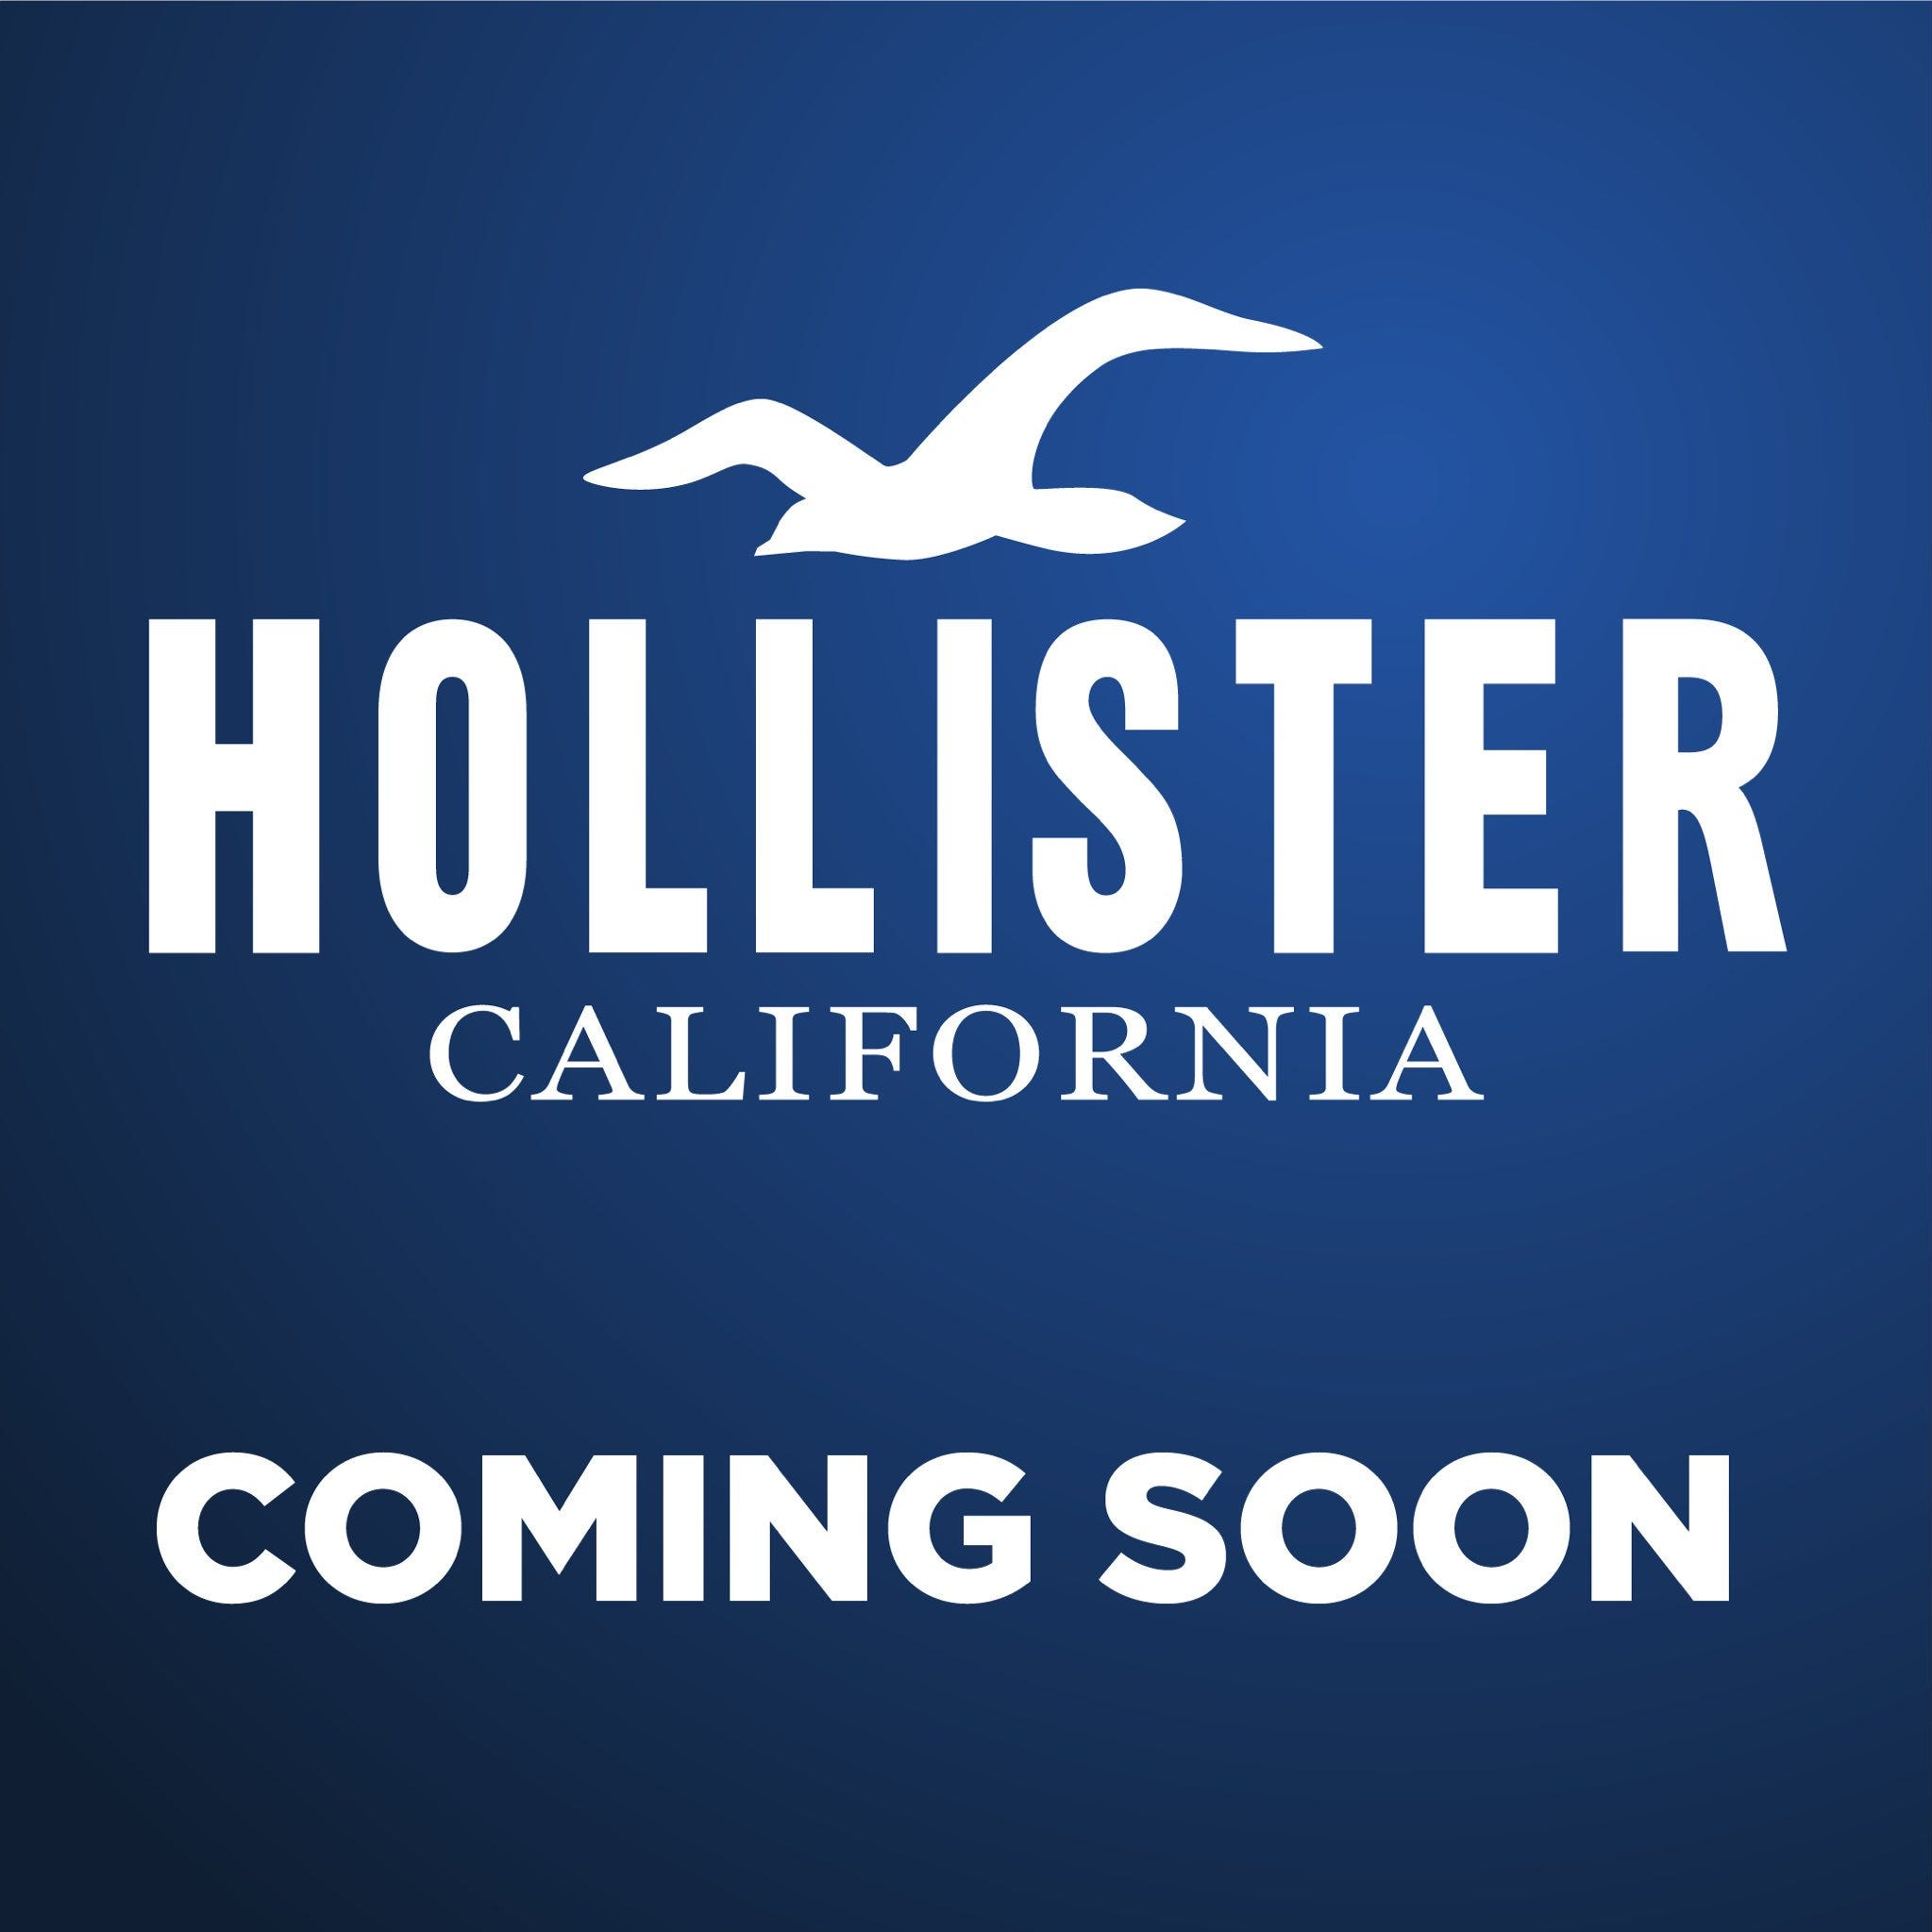 Corpus Christi's La Palmera mall confirms Hollister store opening before Christmas